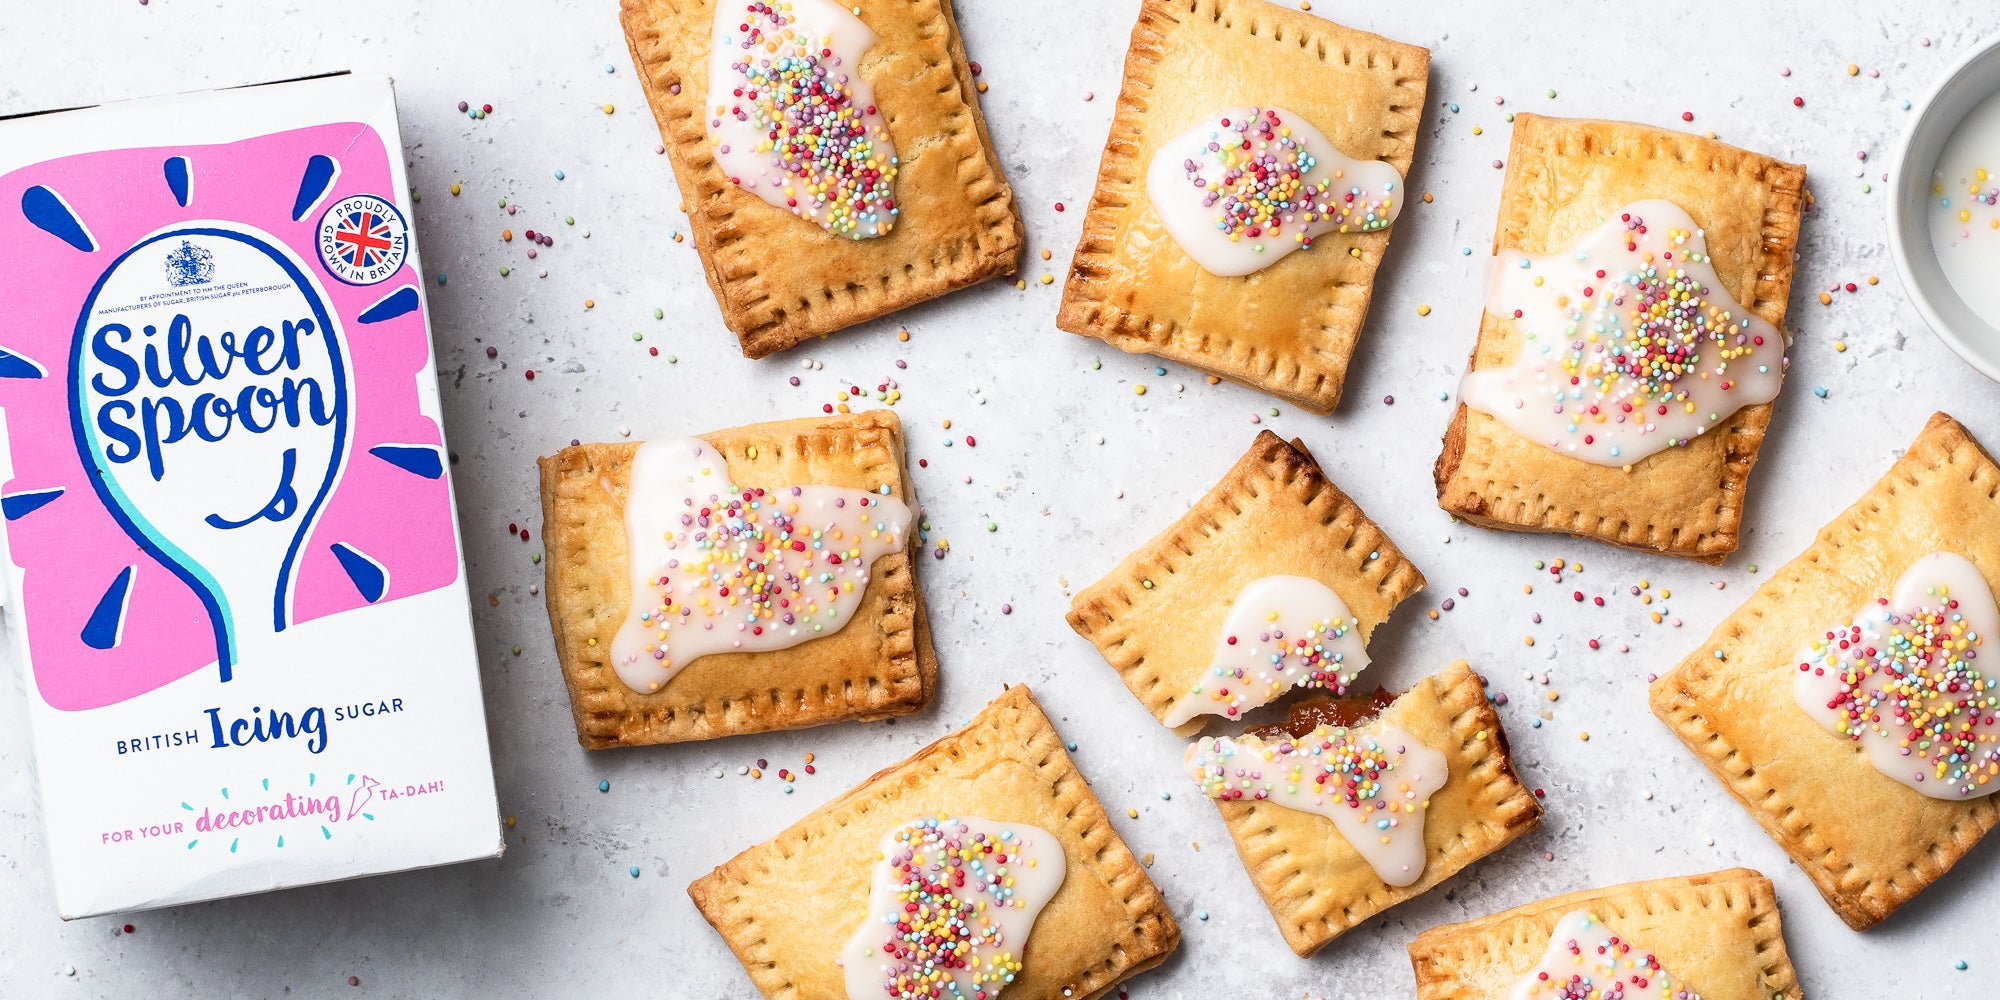 Overhead shot of Pop Tarts with white icing and sprinkles. One broken in half. Icing sugar pack in shot